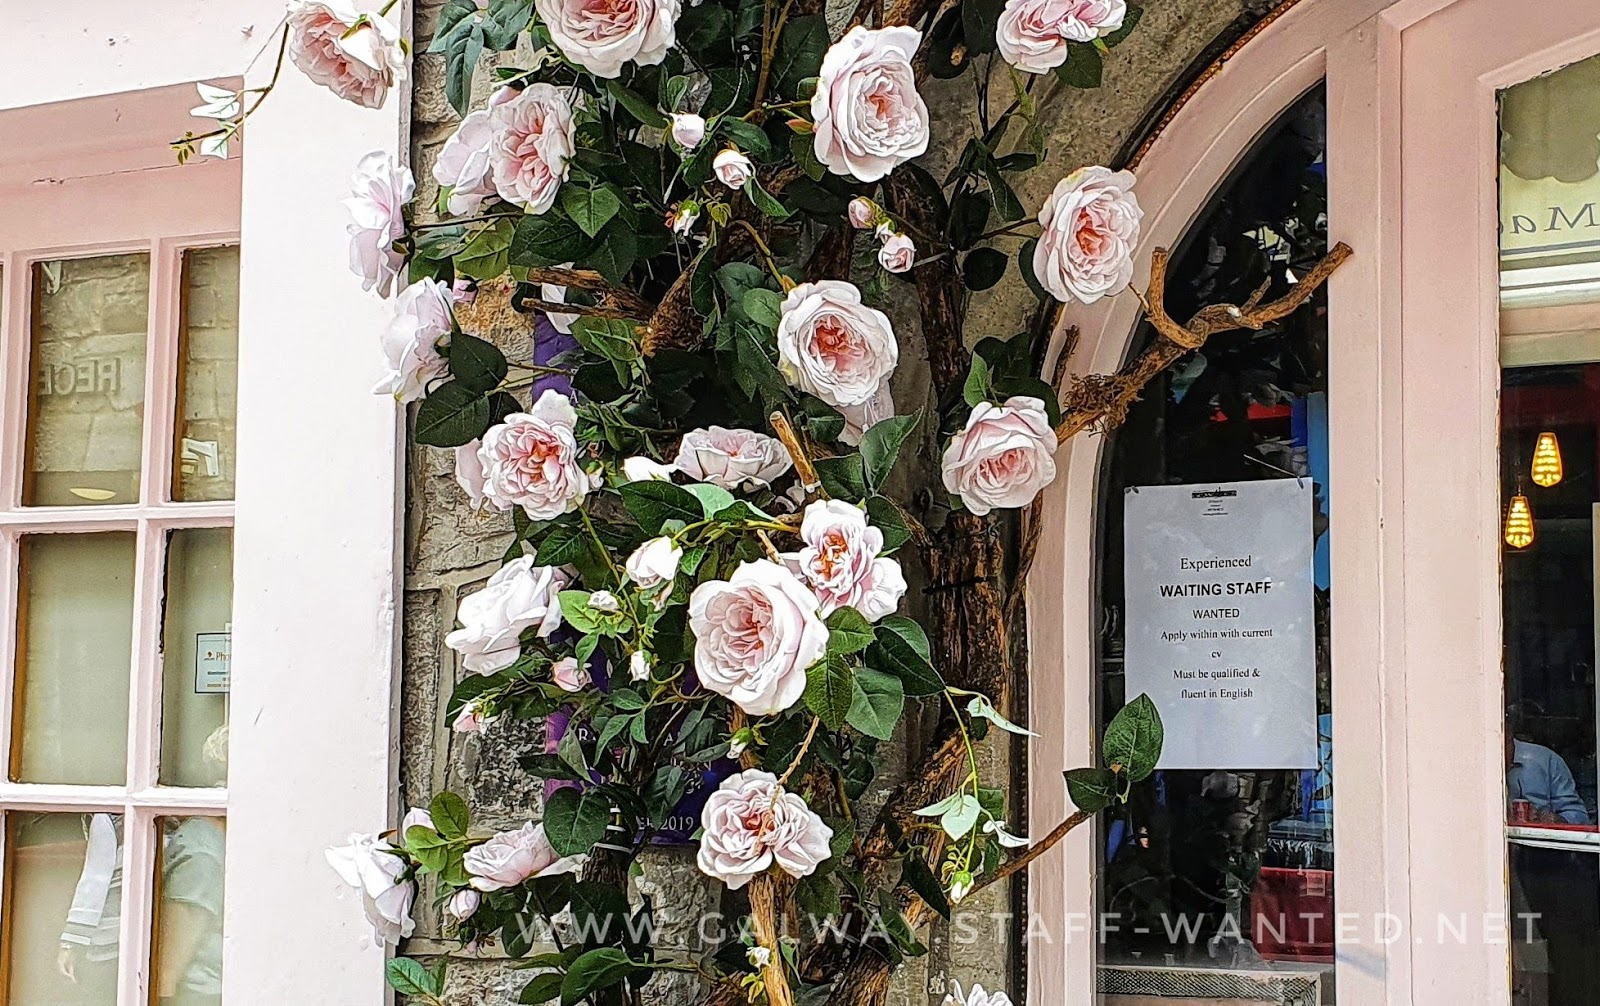 Delicate light cherry-blossom-pink roses framing an arch-style restaurant doorway - with a waitressing staff-wanted sign in the window